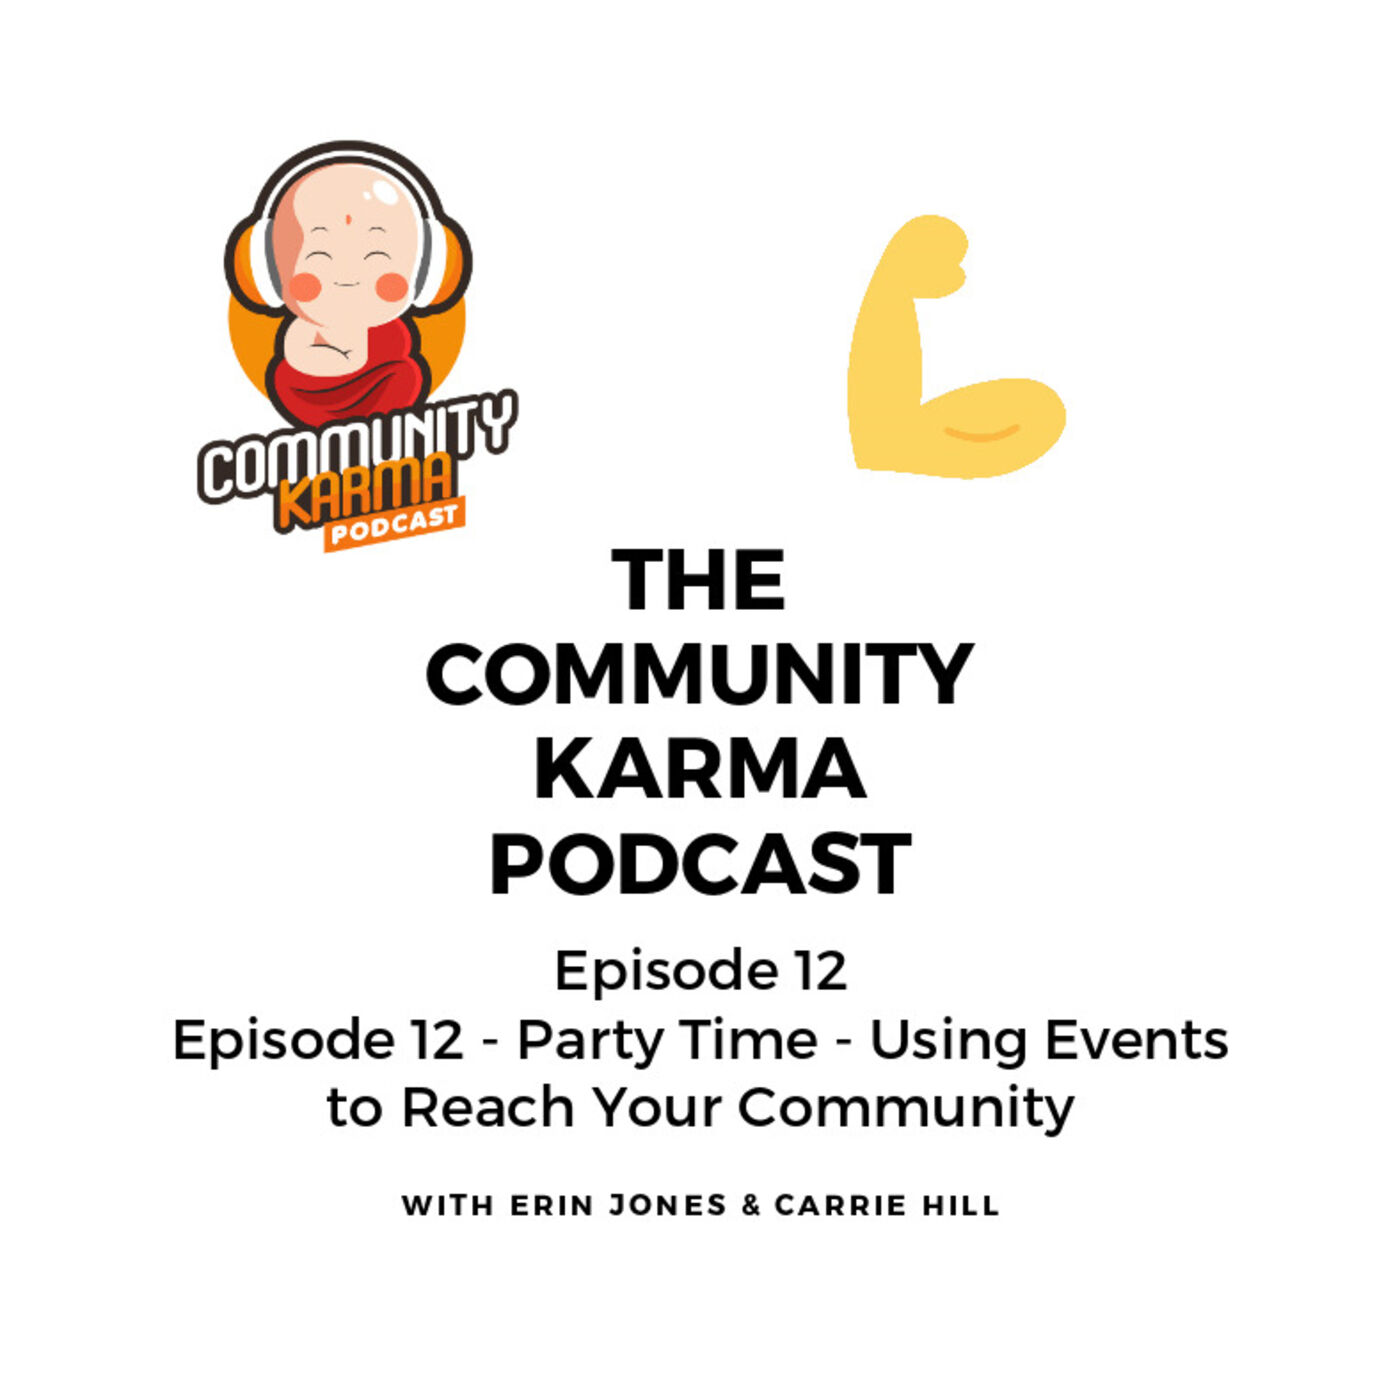 Episode 12: Party Time! Using Events to Reach Your Community.